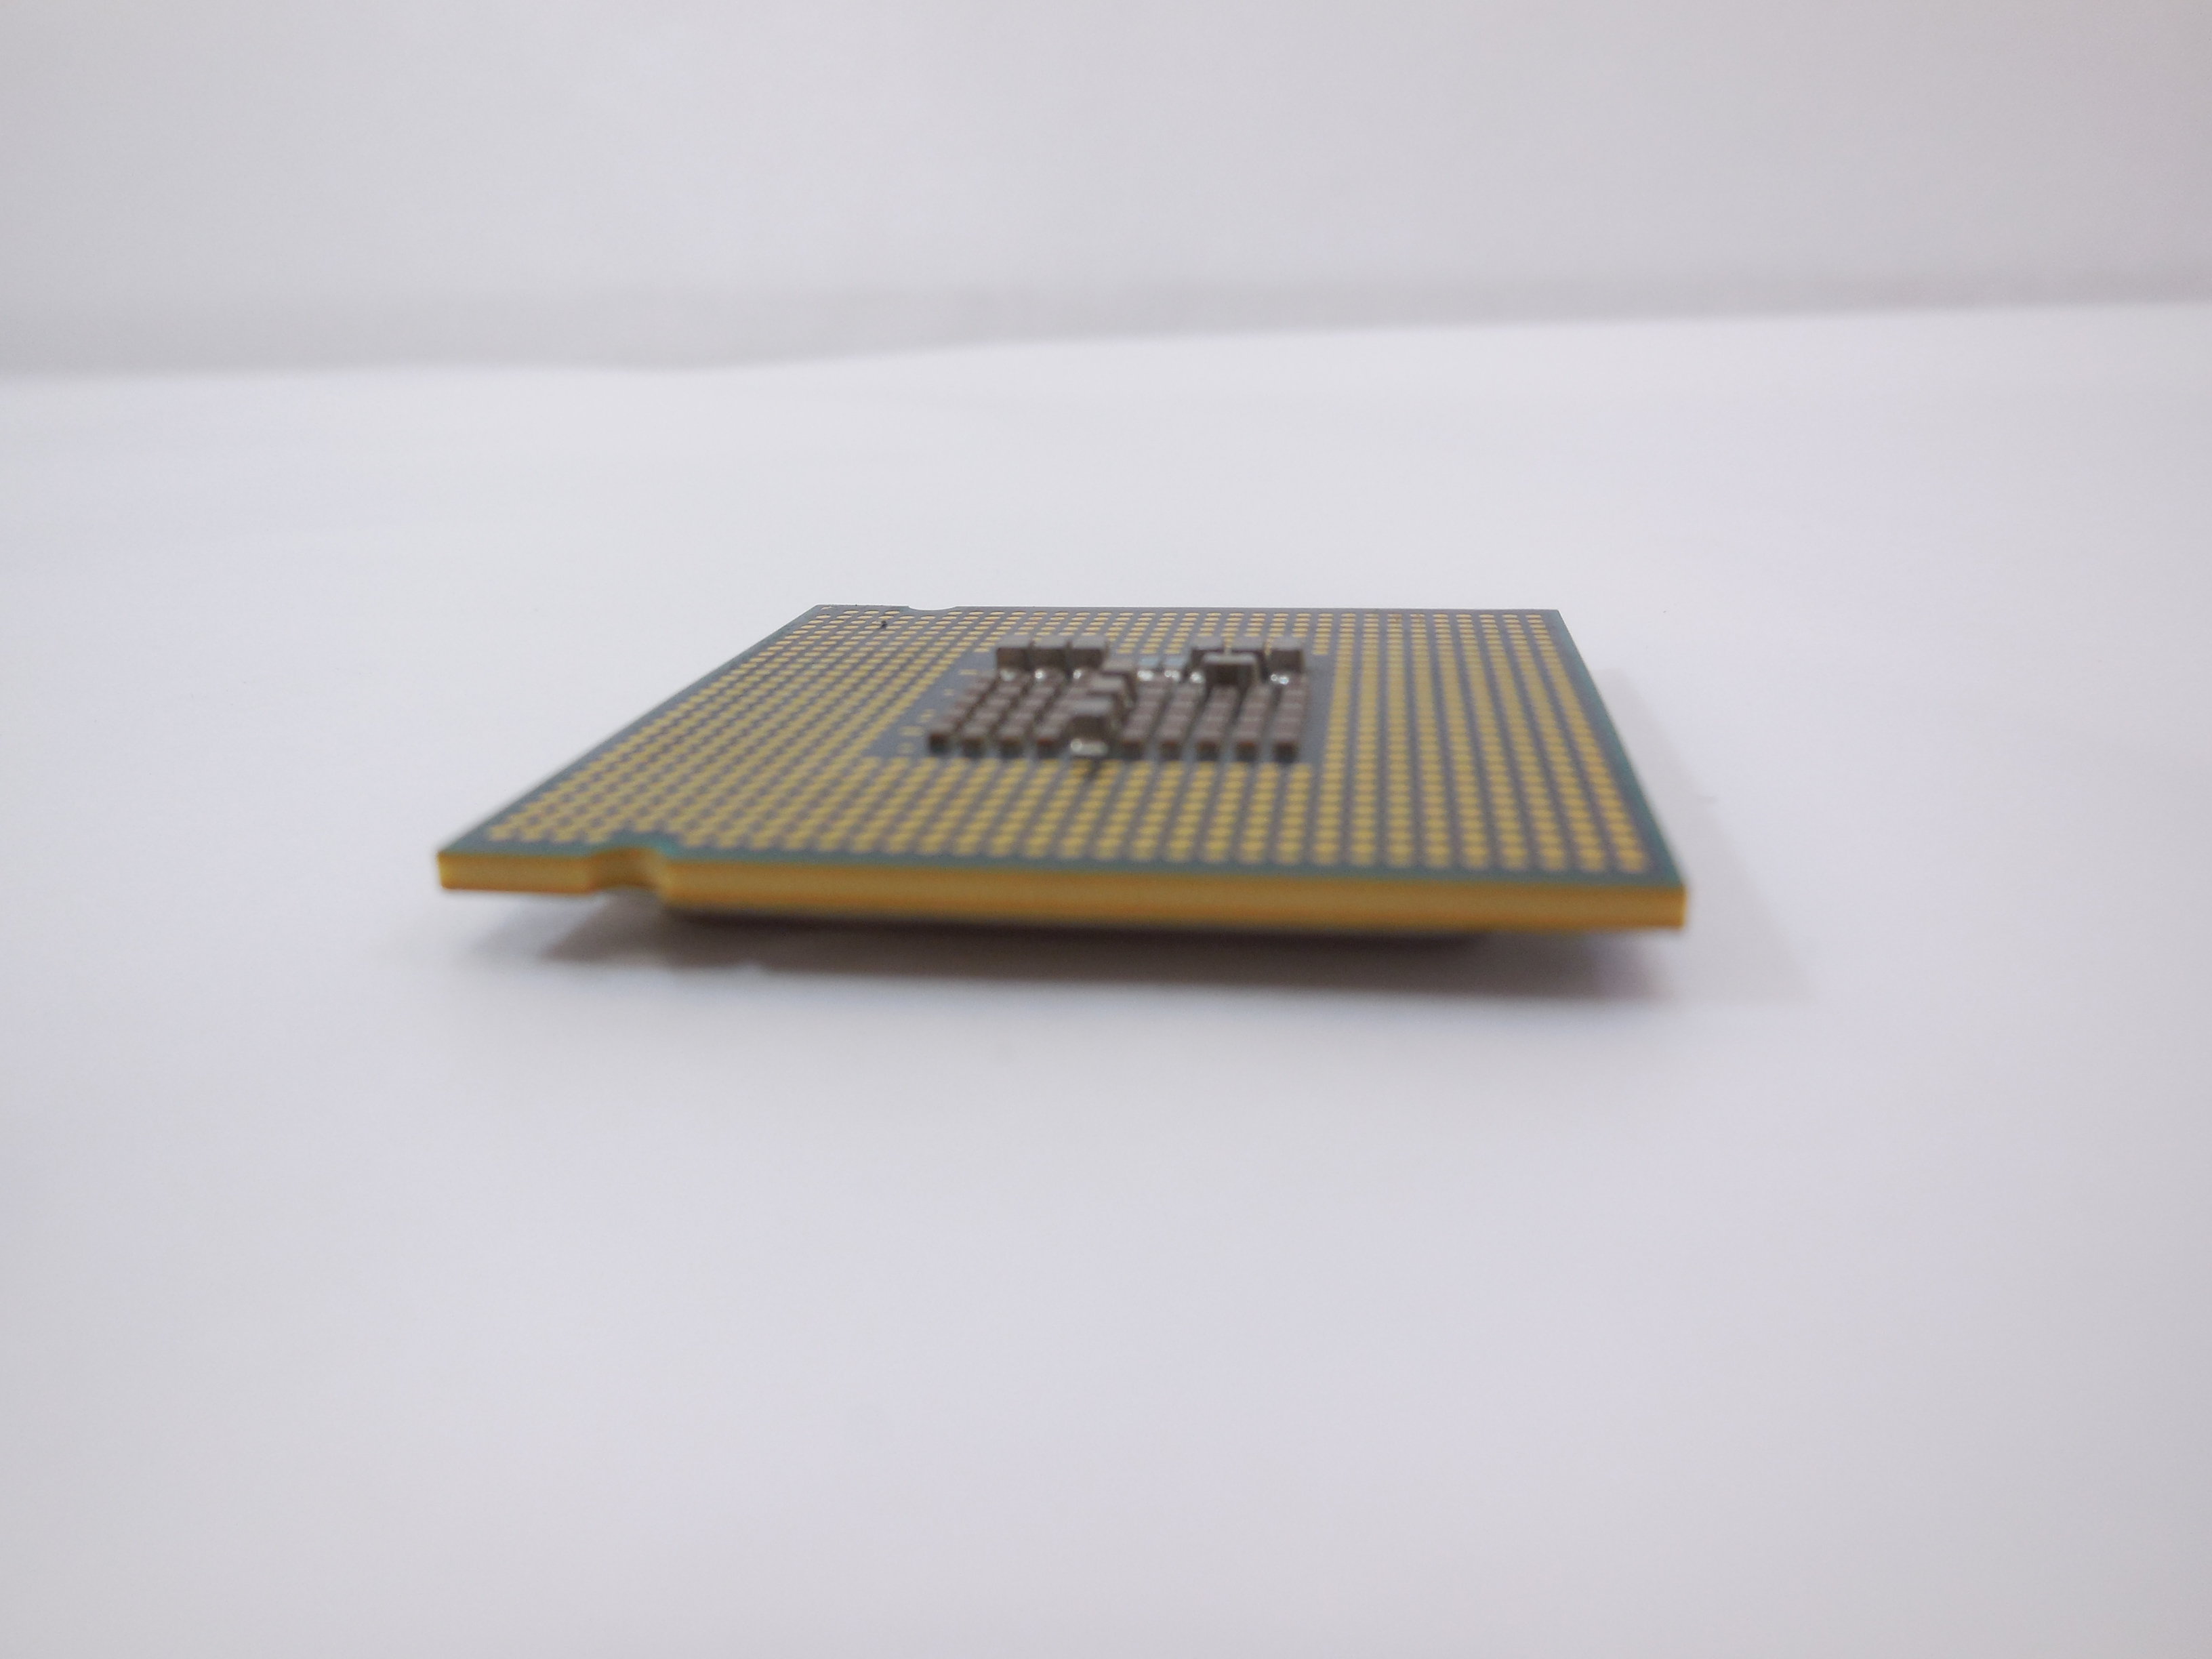 Процессор Intel Core 2 Quad Q6600 - Pic n 256186